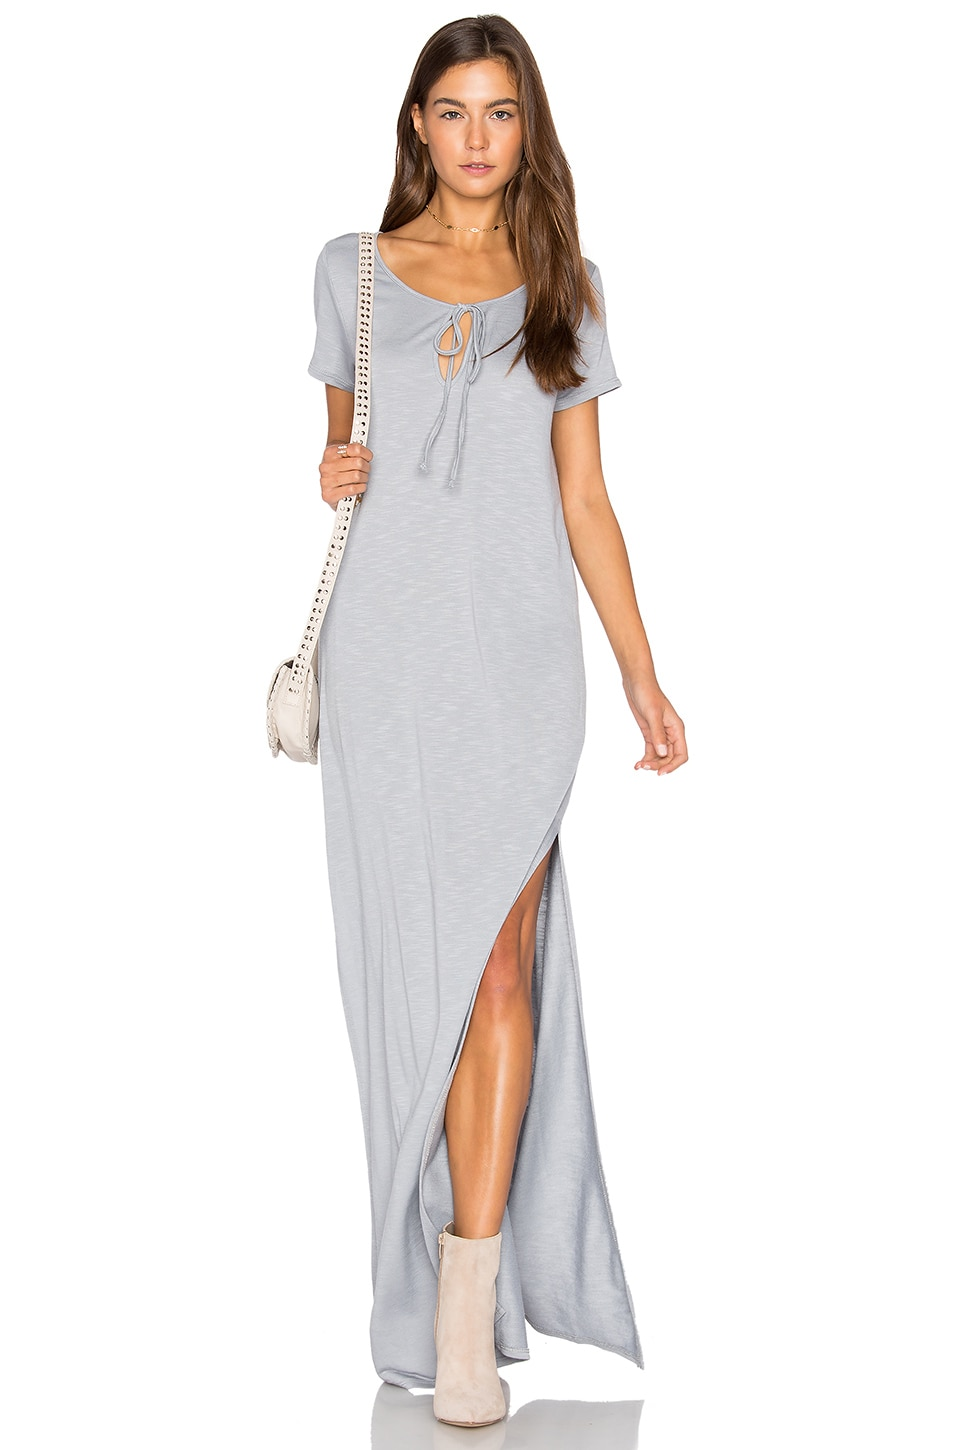 Lanston Caftan Shirt Maxi Dress in Oyster